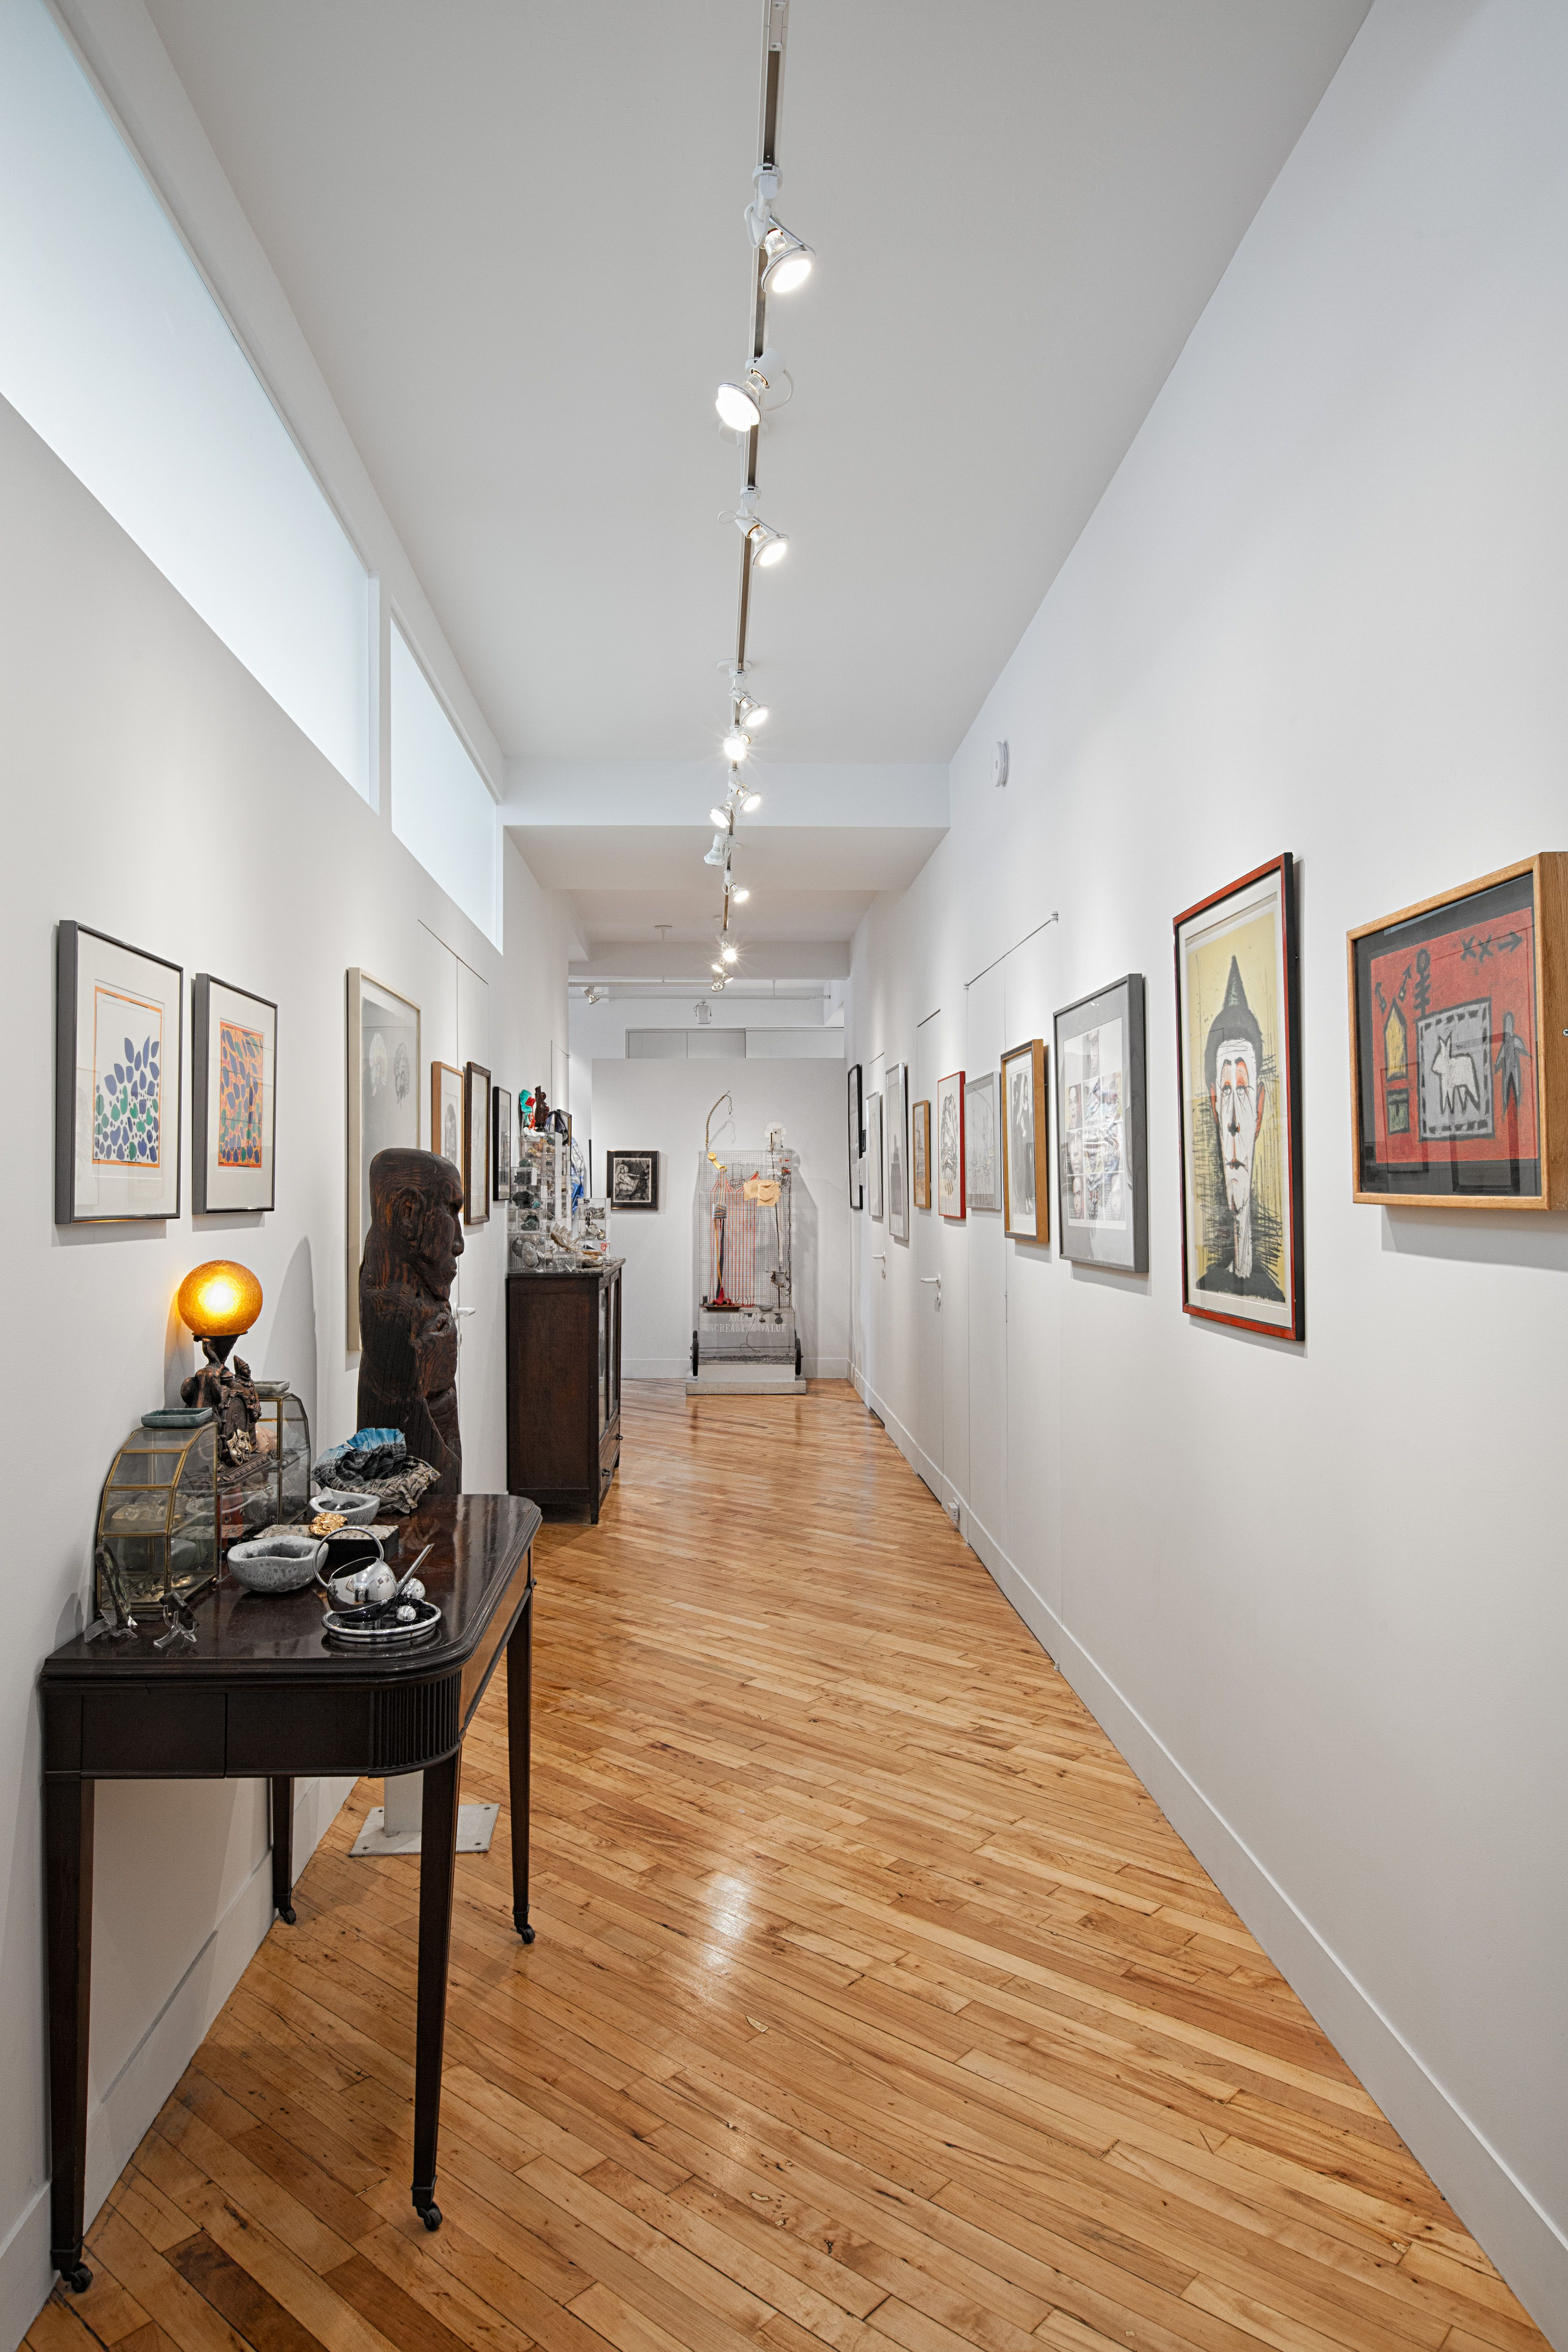 Hallway in artist s Manhattan loft hallway tables art paintings